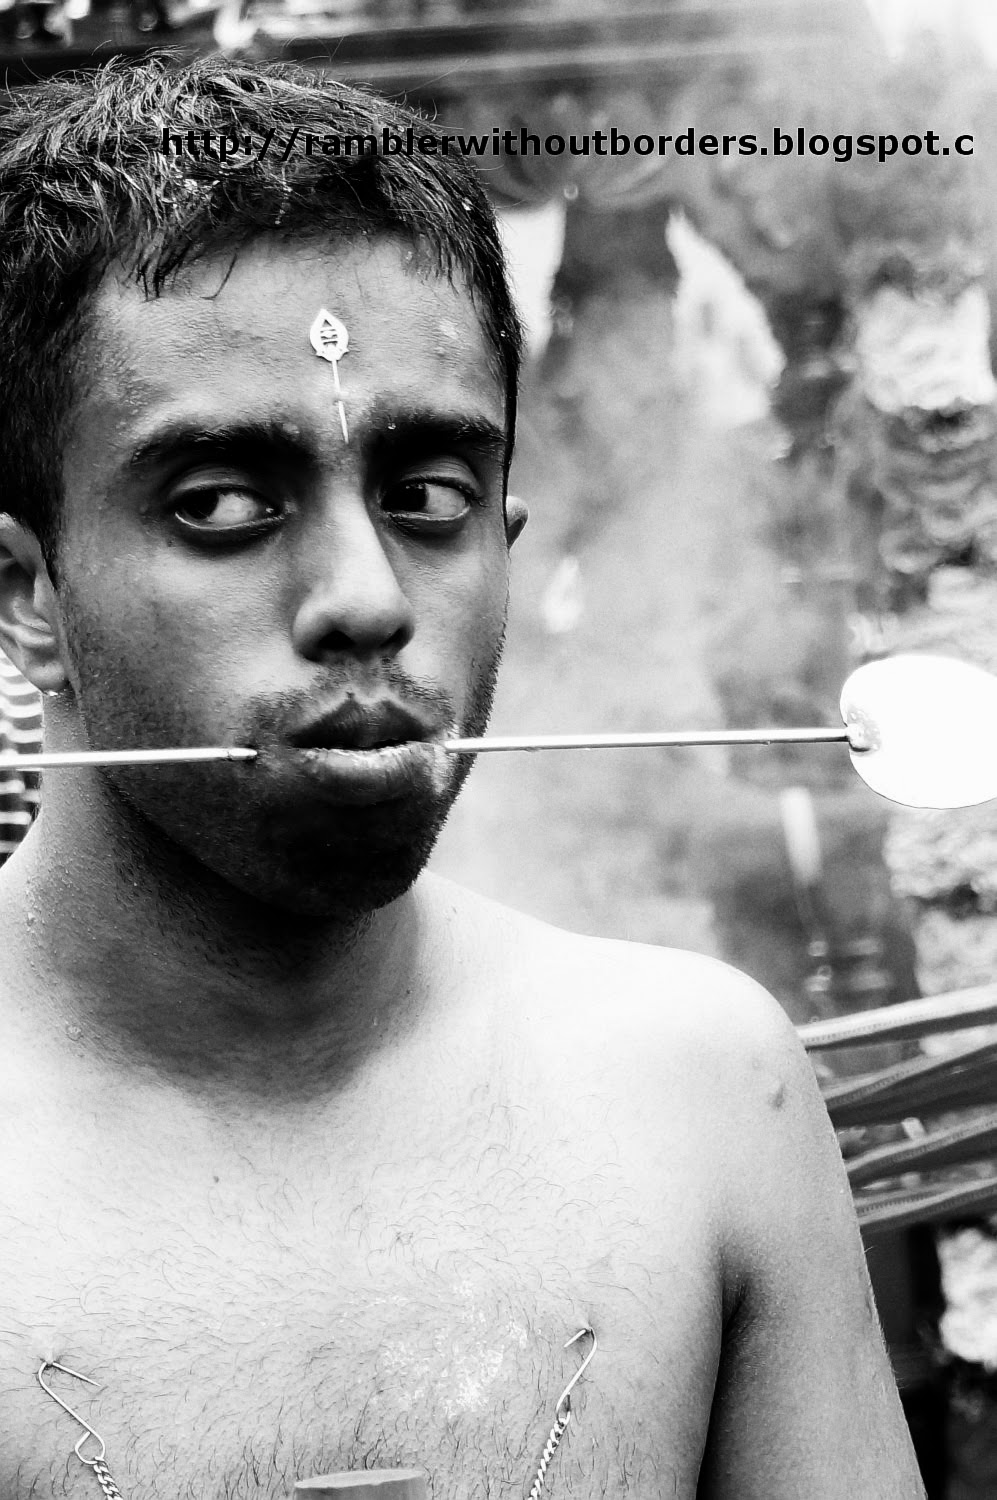 Devotee with cheek piercing during Thaipusam Festival, Singapore